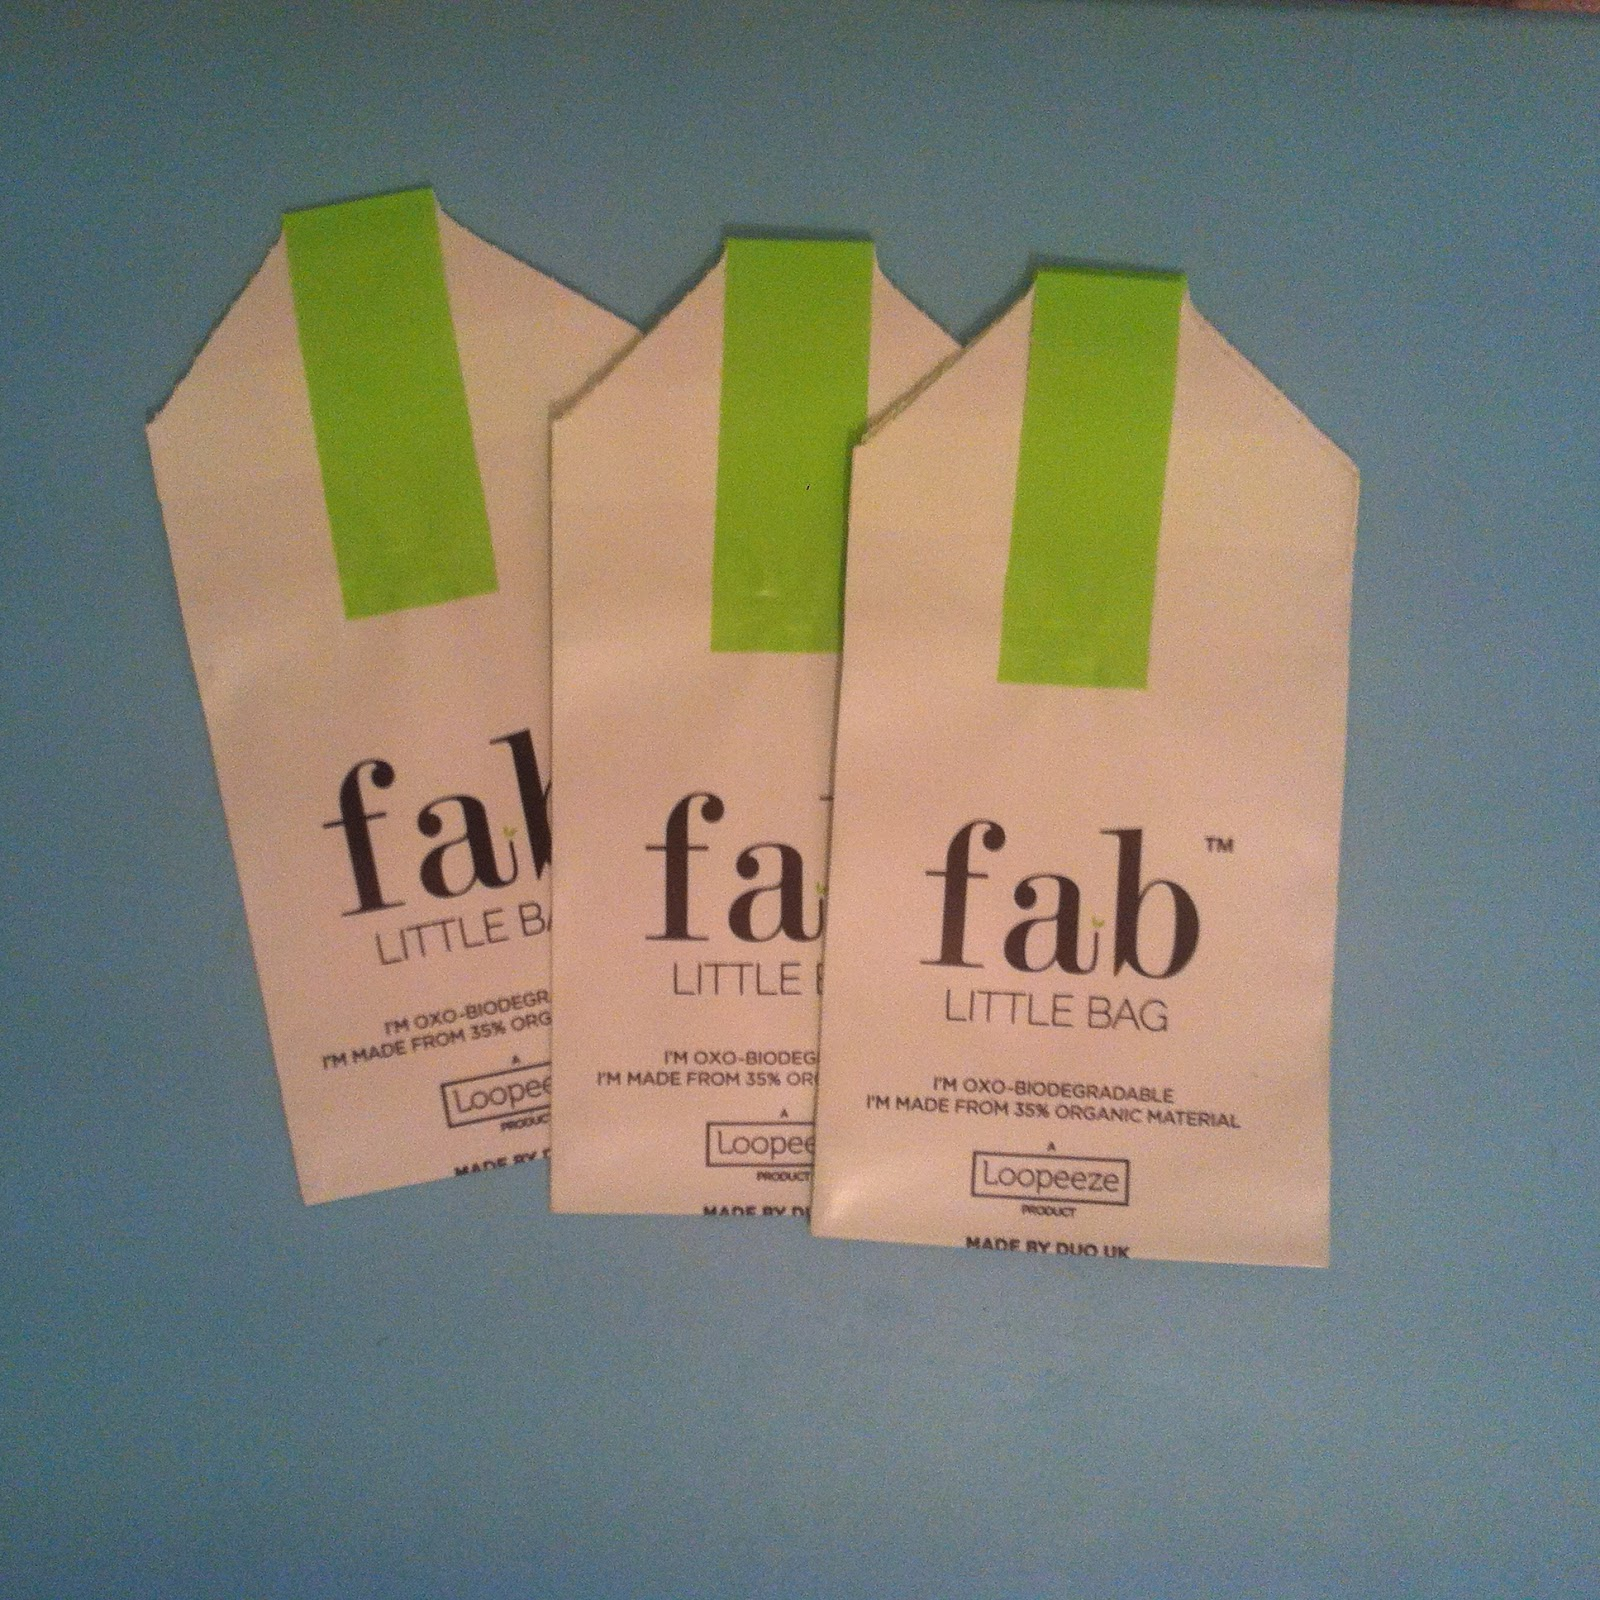 Essentially Fablittlebag Is A Cleaner Discreet And Mess Free Way Of Disposing Tampons Or Even Liners Sanitary Towels There More Than Enough E